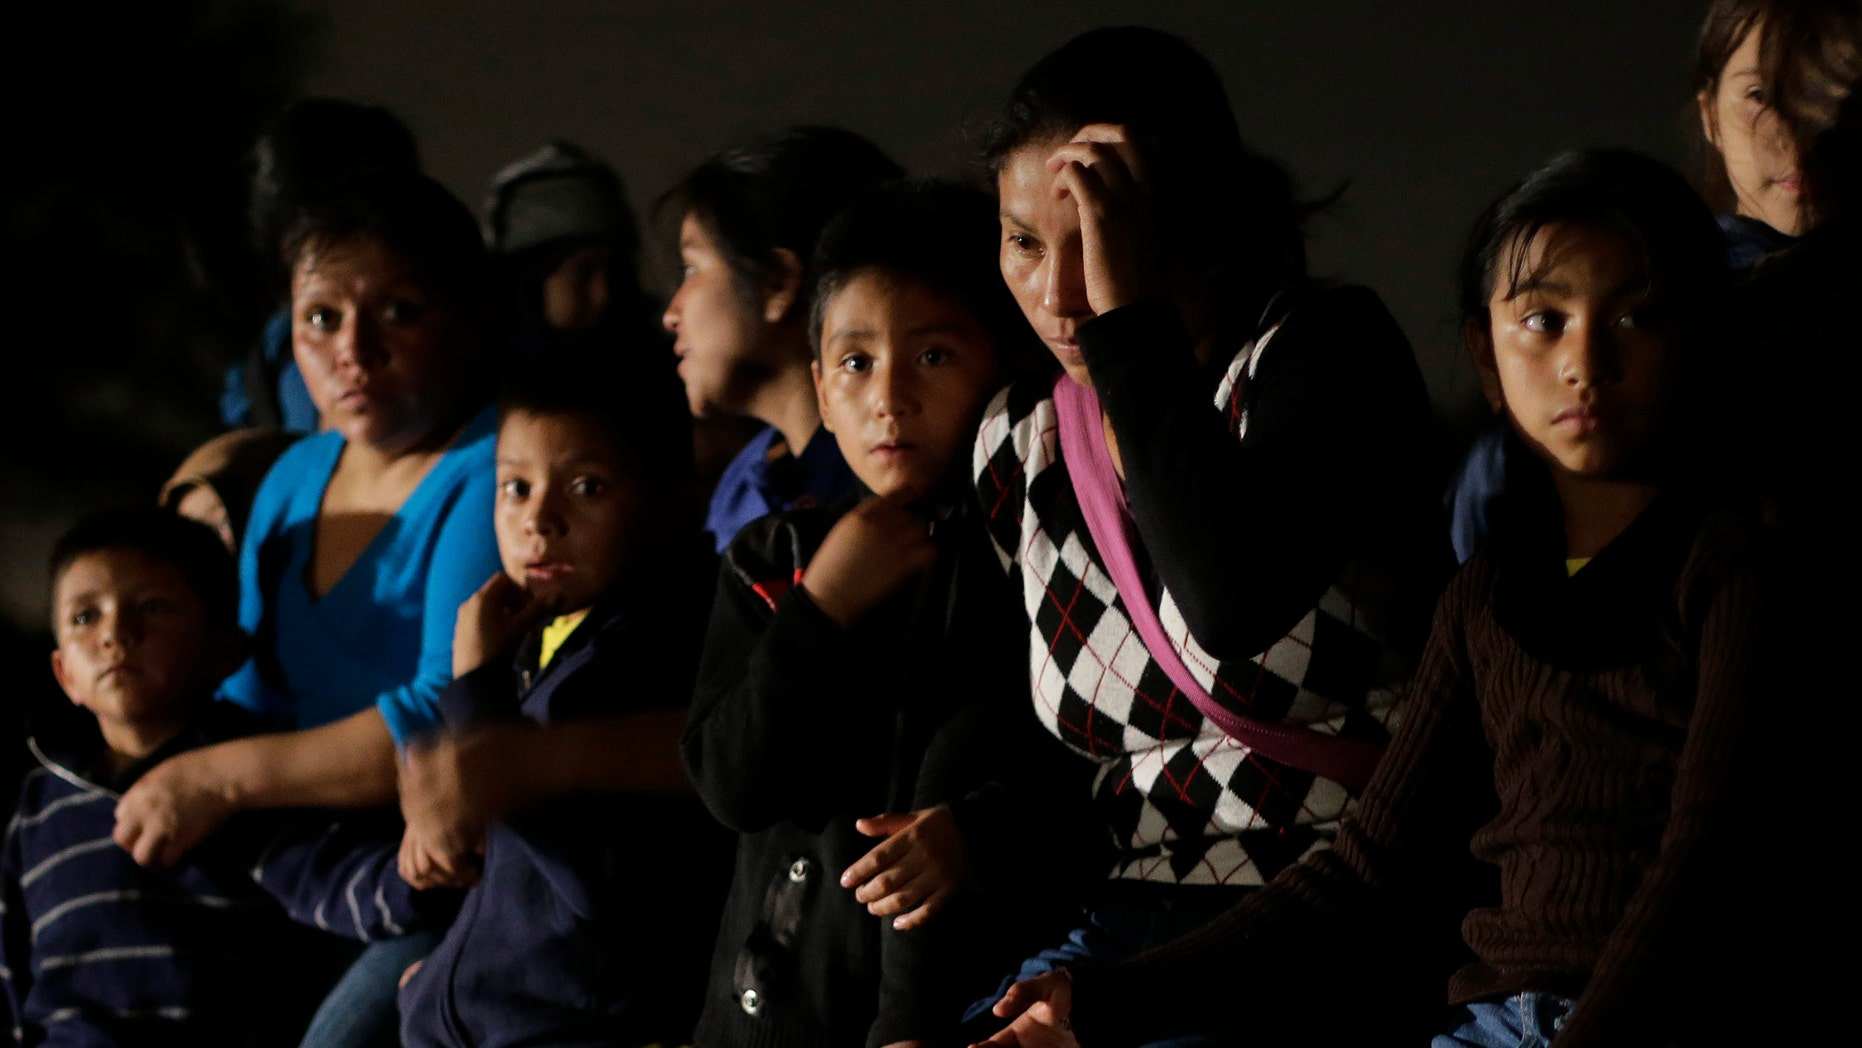 FILE - In this June 25, 2014 photo shows a group of  immigrants from Honduras and El Salvador who crossed the U.S.-Mexico border illegally are stopped in Granjeno, Texas. The influx at the border is largely families with children or by minors traveling alone. From October 2012 through the end of September 2013, the U.S. Border Patrol apprehended about 24,000 unaccompanied children. But between October and the end of June 2014, the number shot up to 57,000. Secretary of Homeland Security Jeh Johnson testified recently that the number is accelerating so fast that it could reach 90,000 by the end of September. Most of them are coming from El Salvador, Honduras and Guatemala. (AP Photo/Eric Gay, File)